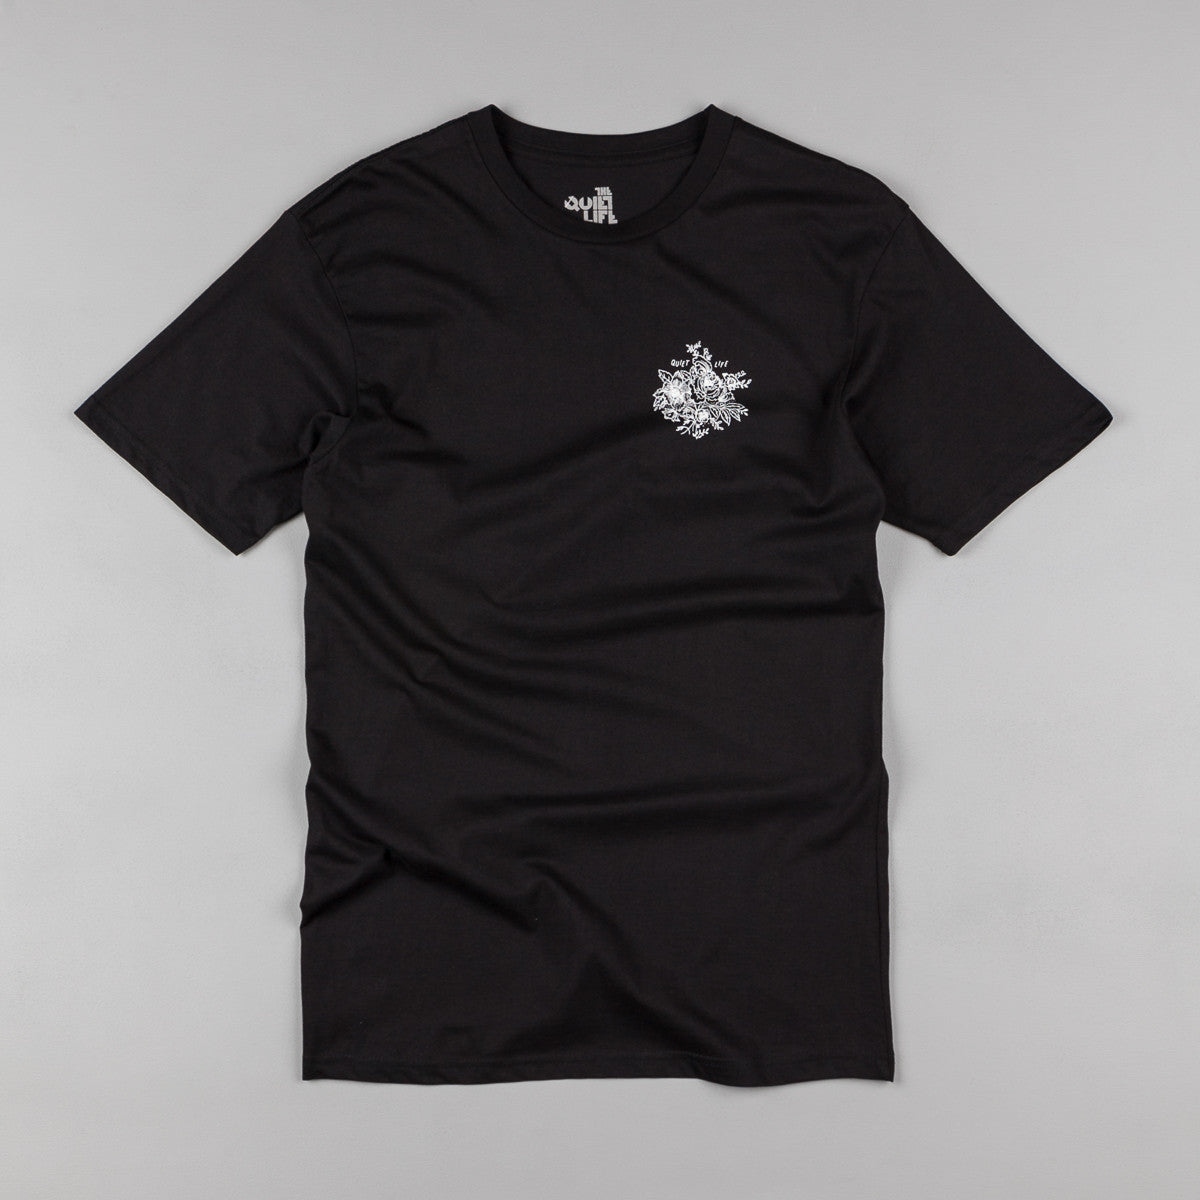 The Quiet Life Duggan Premium T-Shirt - Black